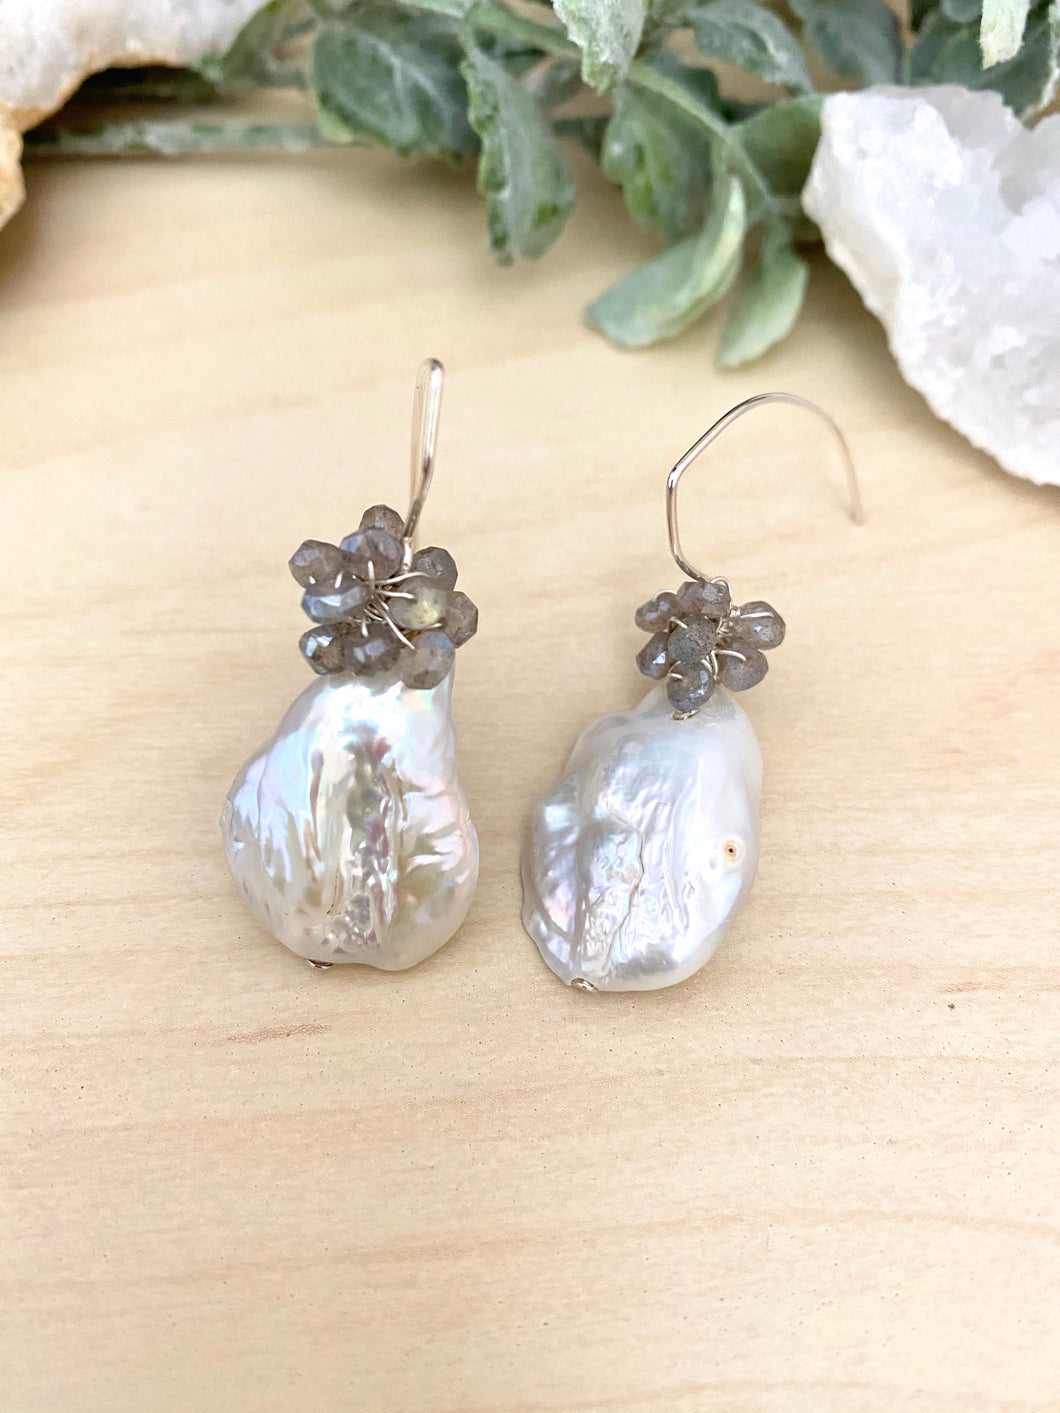 Baroque Freshwater Pearl and Labradorite Earrings on Sterling Silver Ear Wires